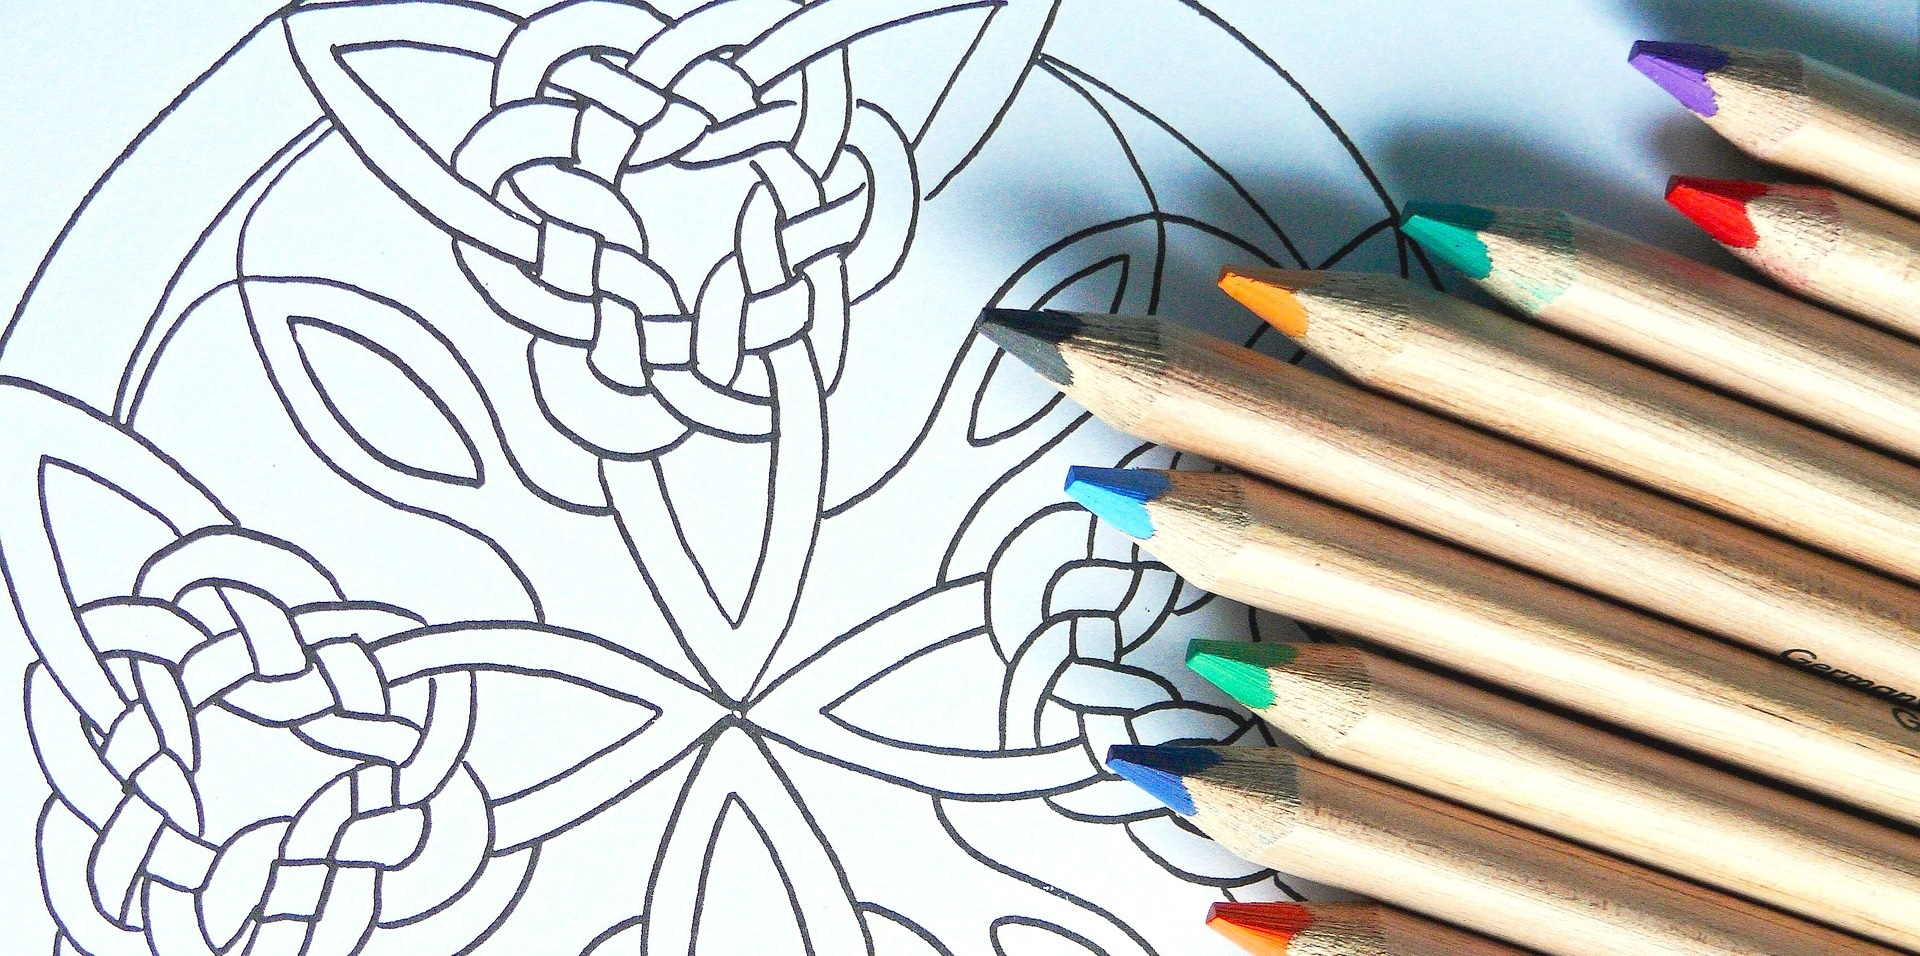 Colored pencils piled alongside a black and white outline of Celtic symbol